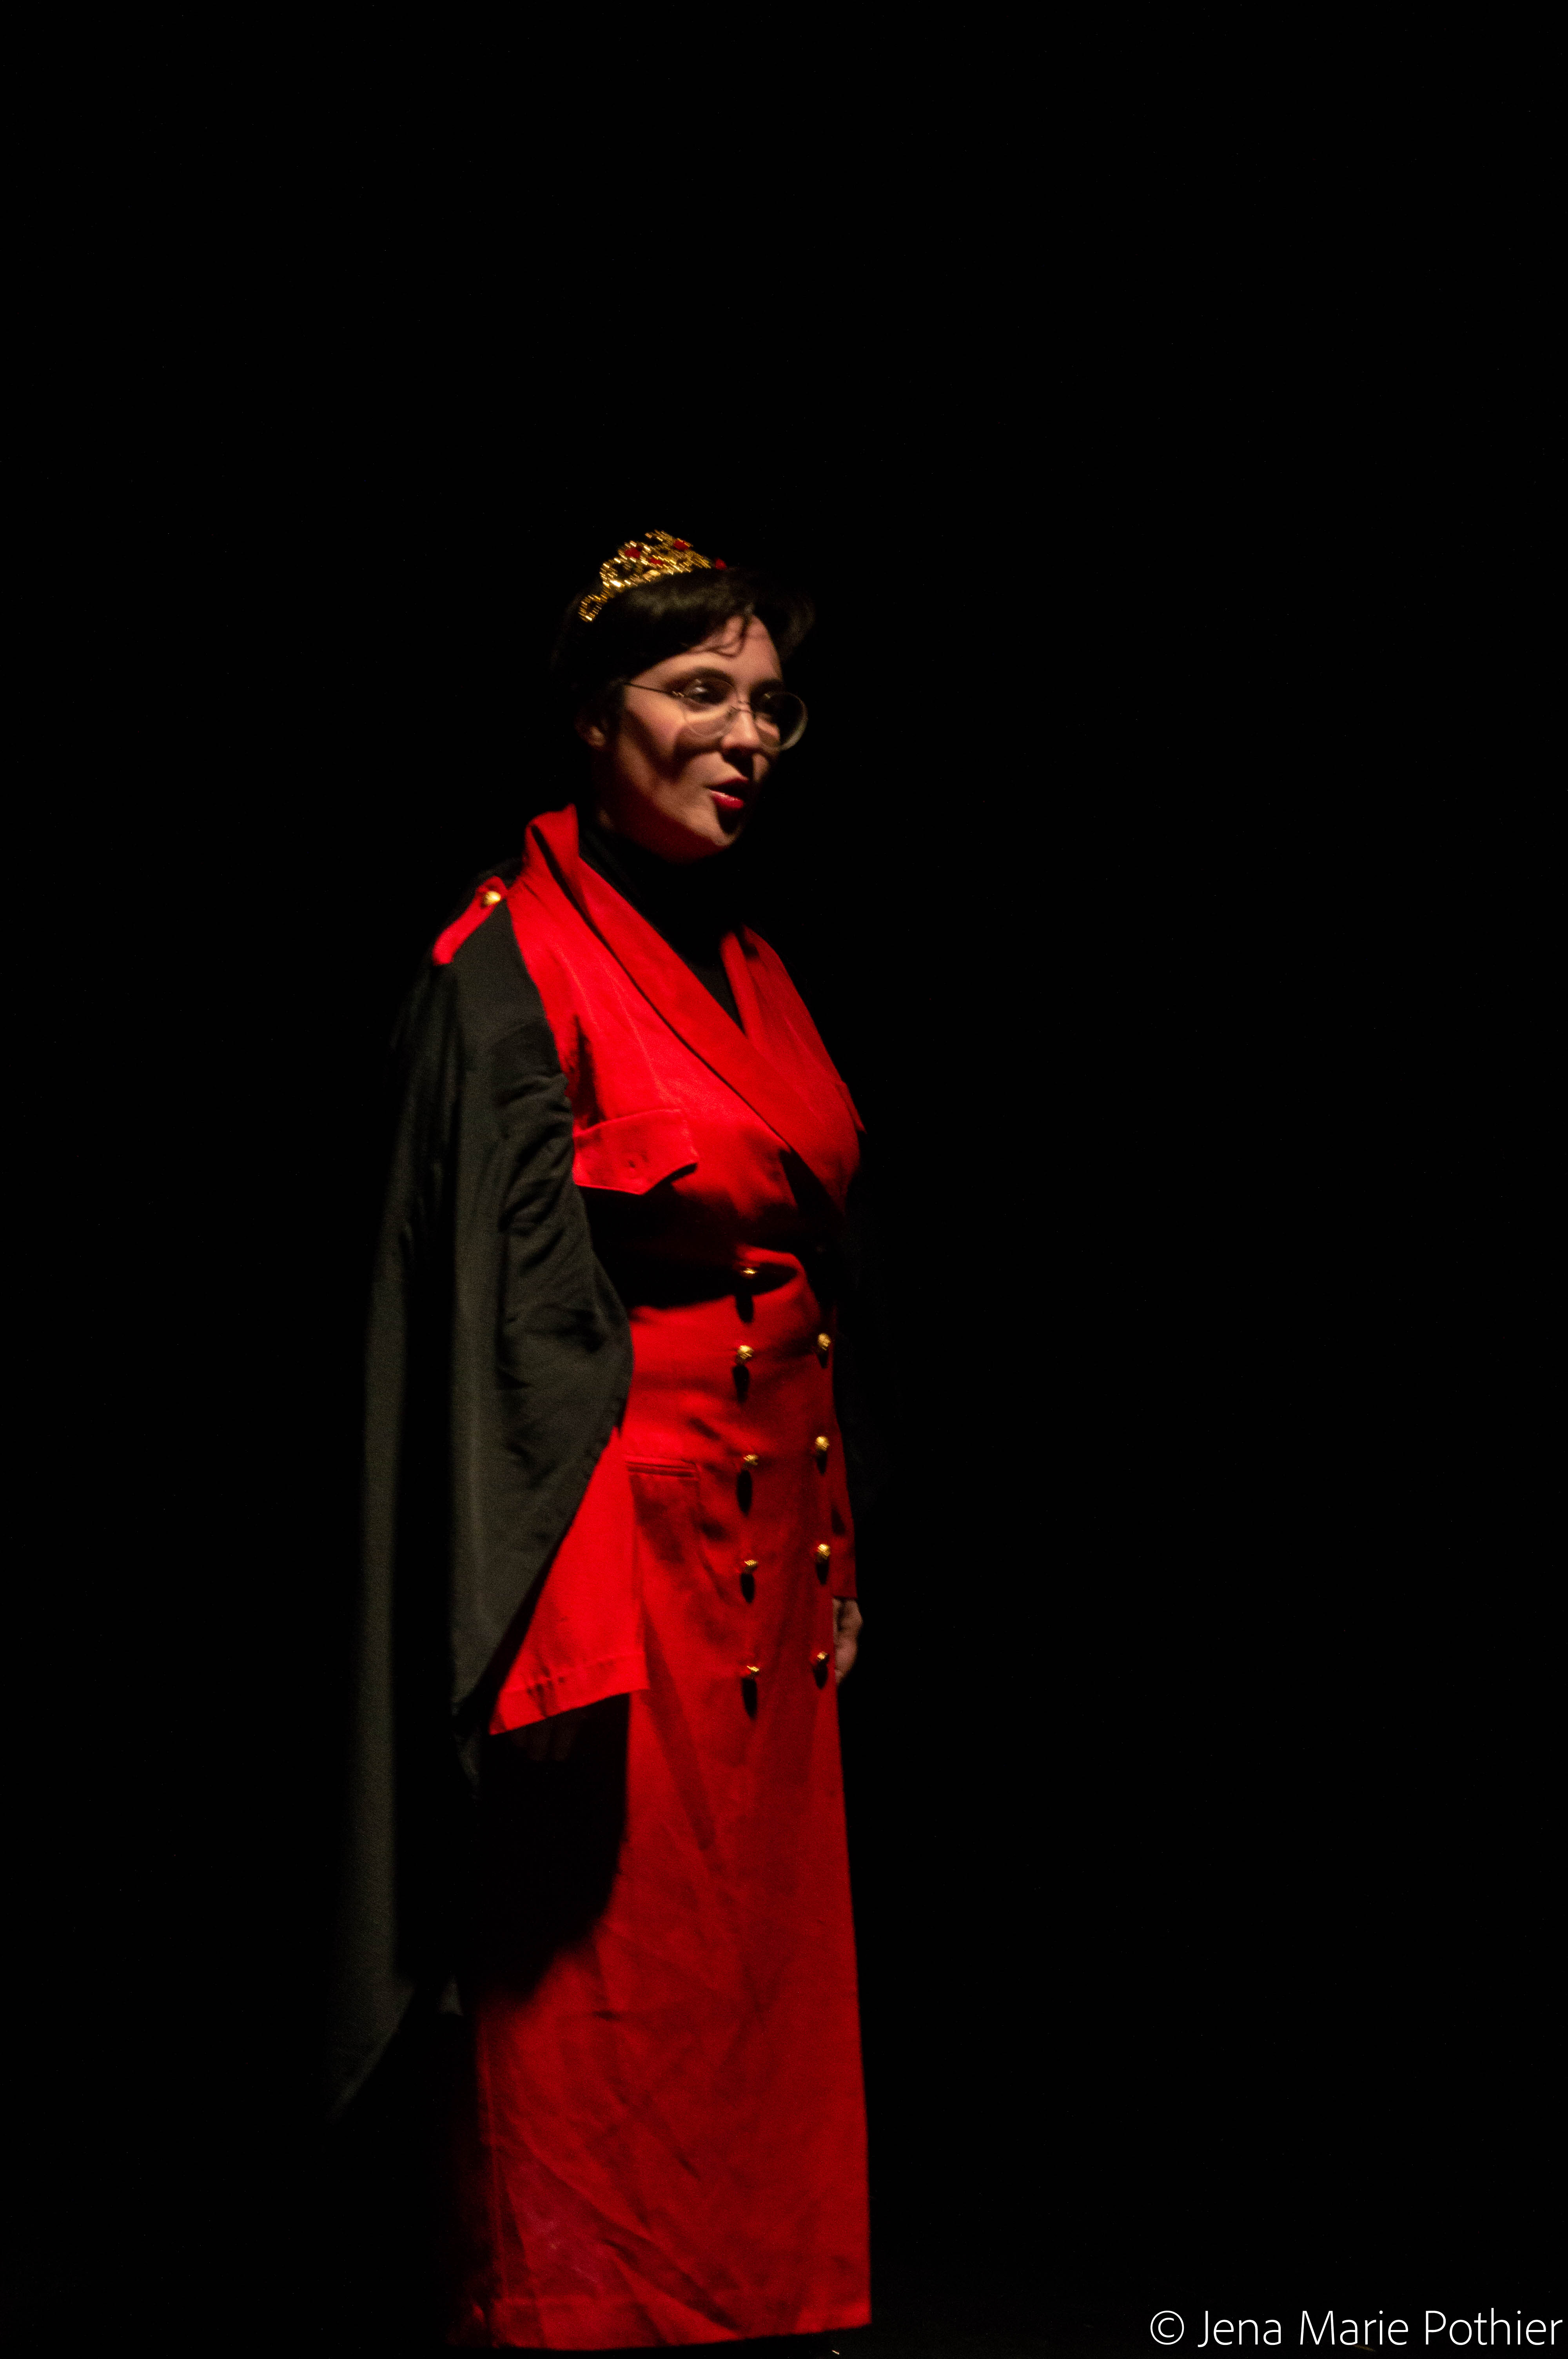 Kerstyn Desjardin as Margaret of Anjou in QUEEN MARGARET by Jennifer Dick, adapted from William Shakespeare, presented by Head Trick Theatre